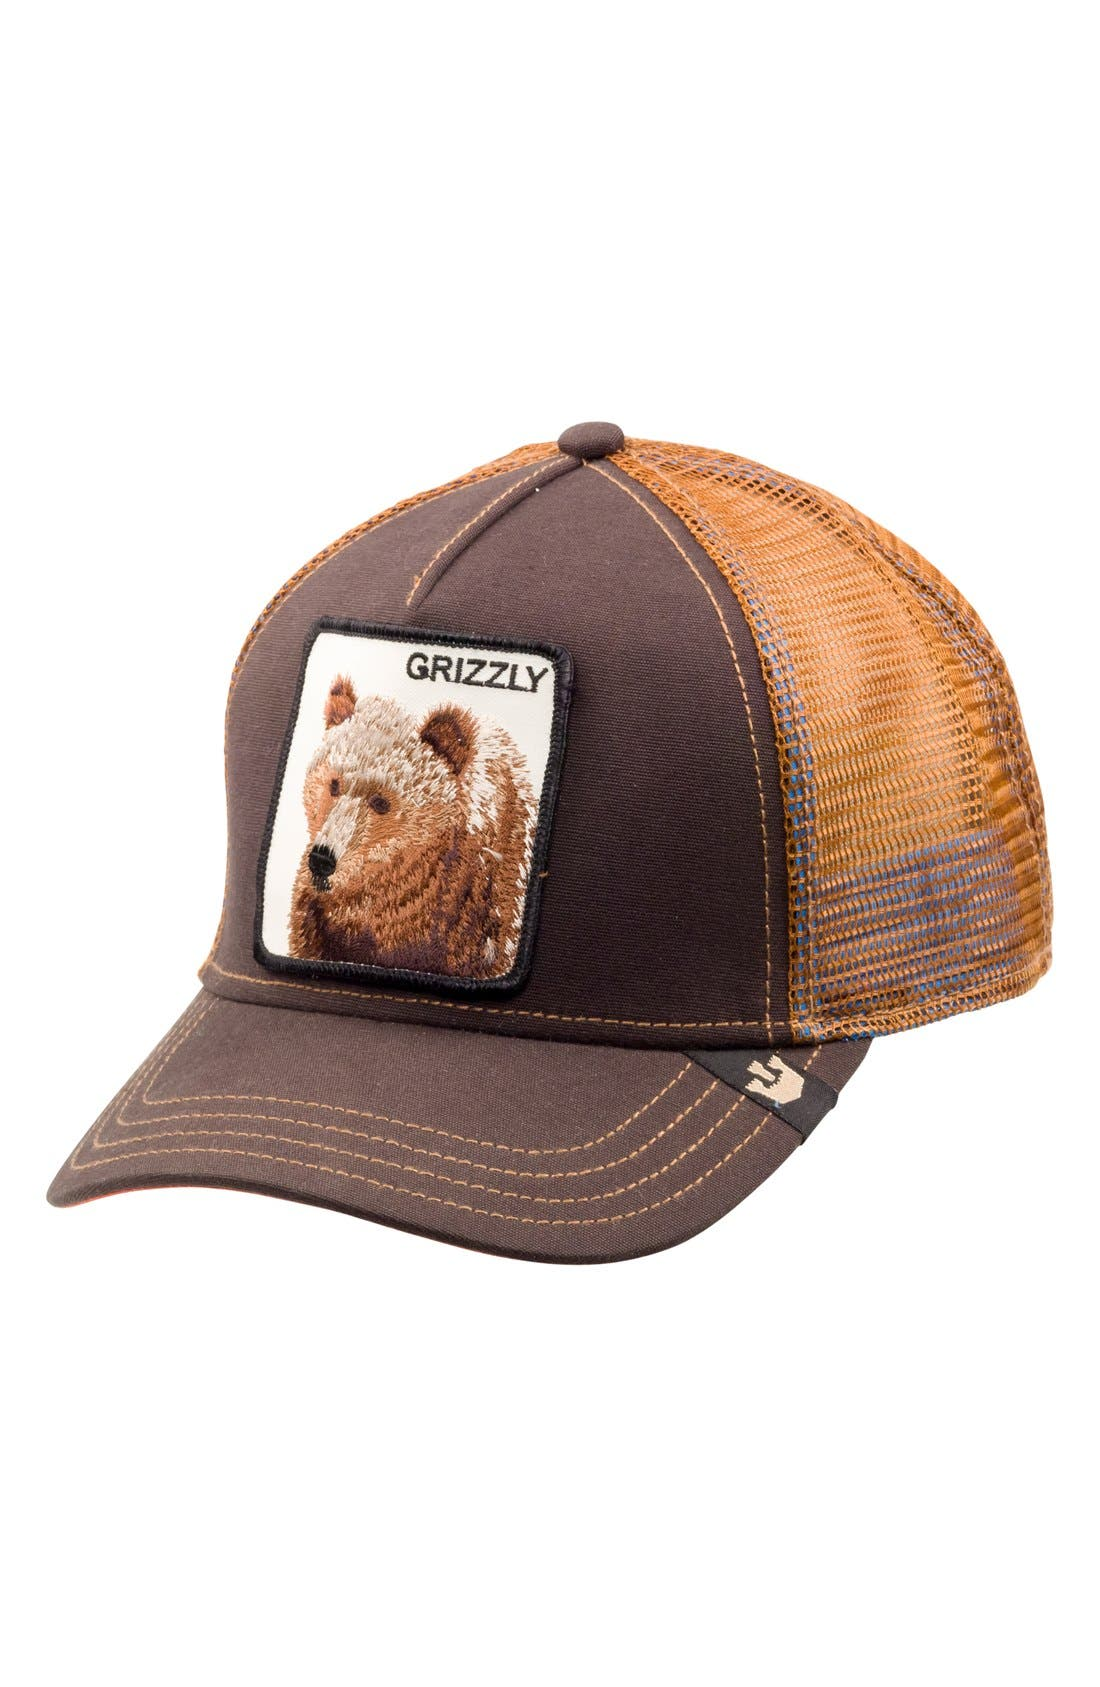 'Animal Farm - Grizz' Mesh Trucker Hat,                         Main,                         color, Brown